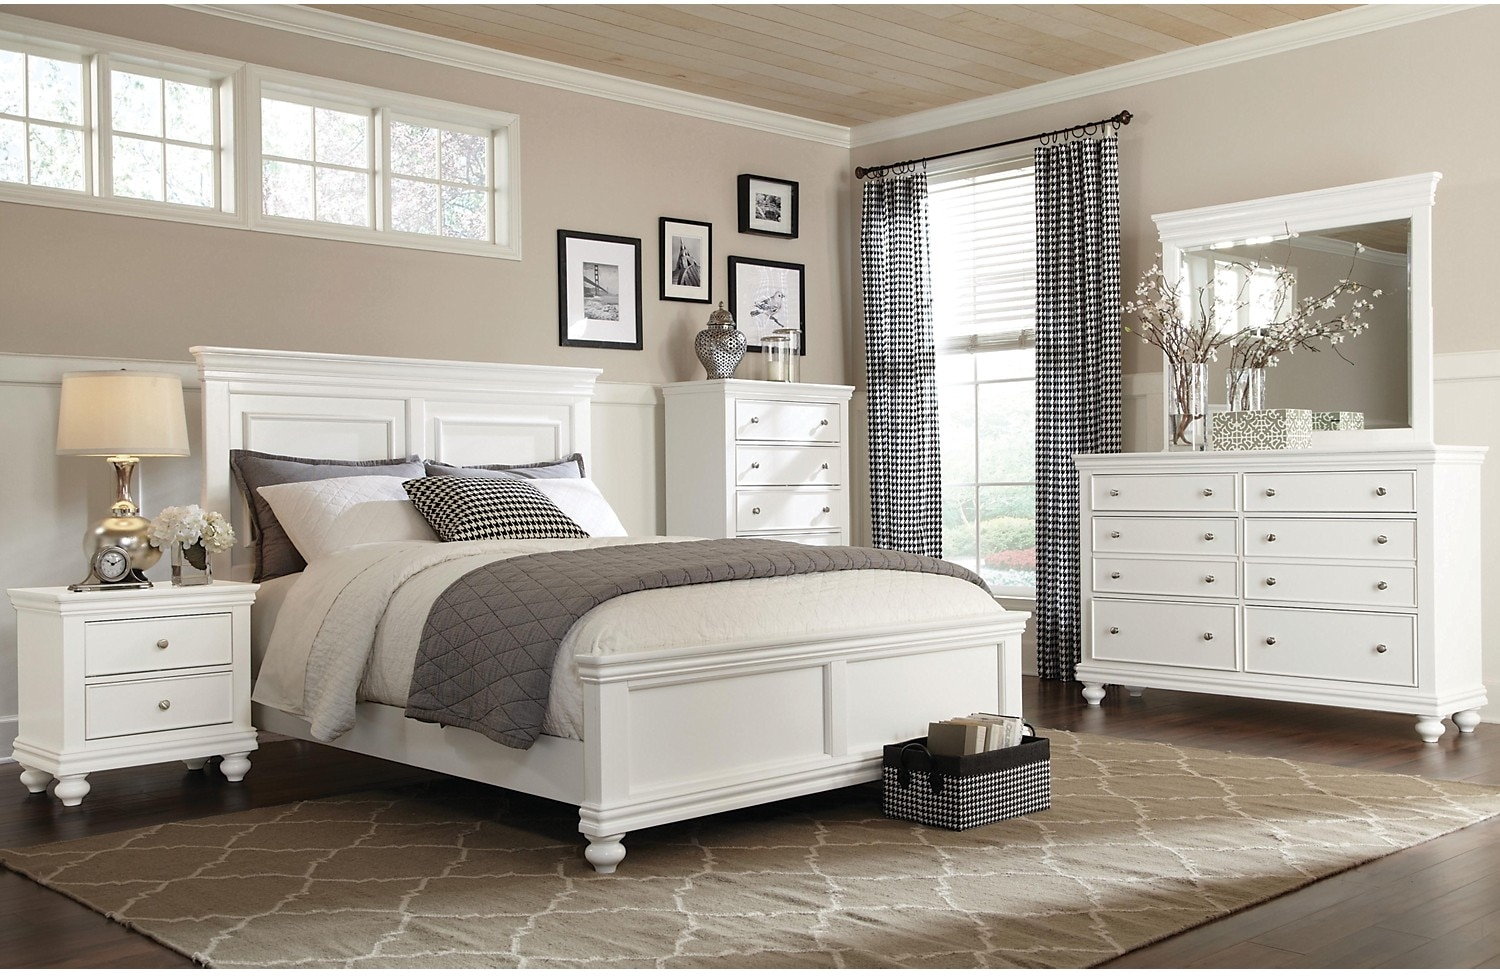 bridgeport 6 piece queen bedroom set white the brick best furniture 4 pc b1008 antique beige with marble top